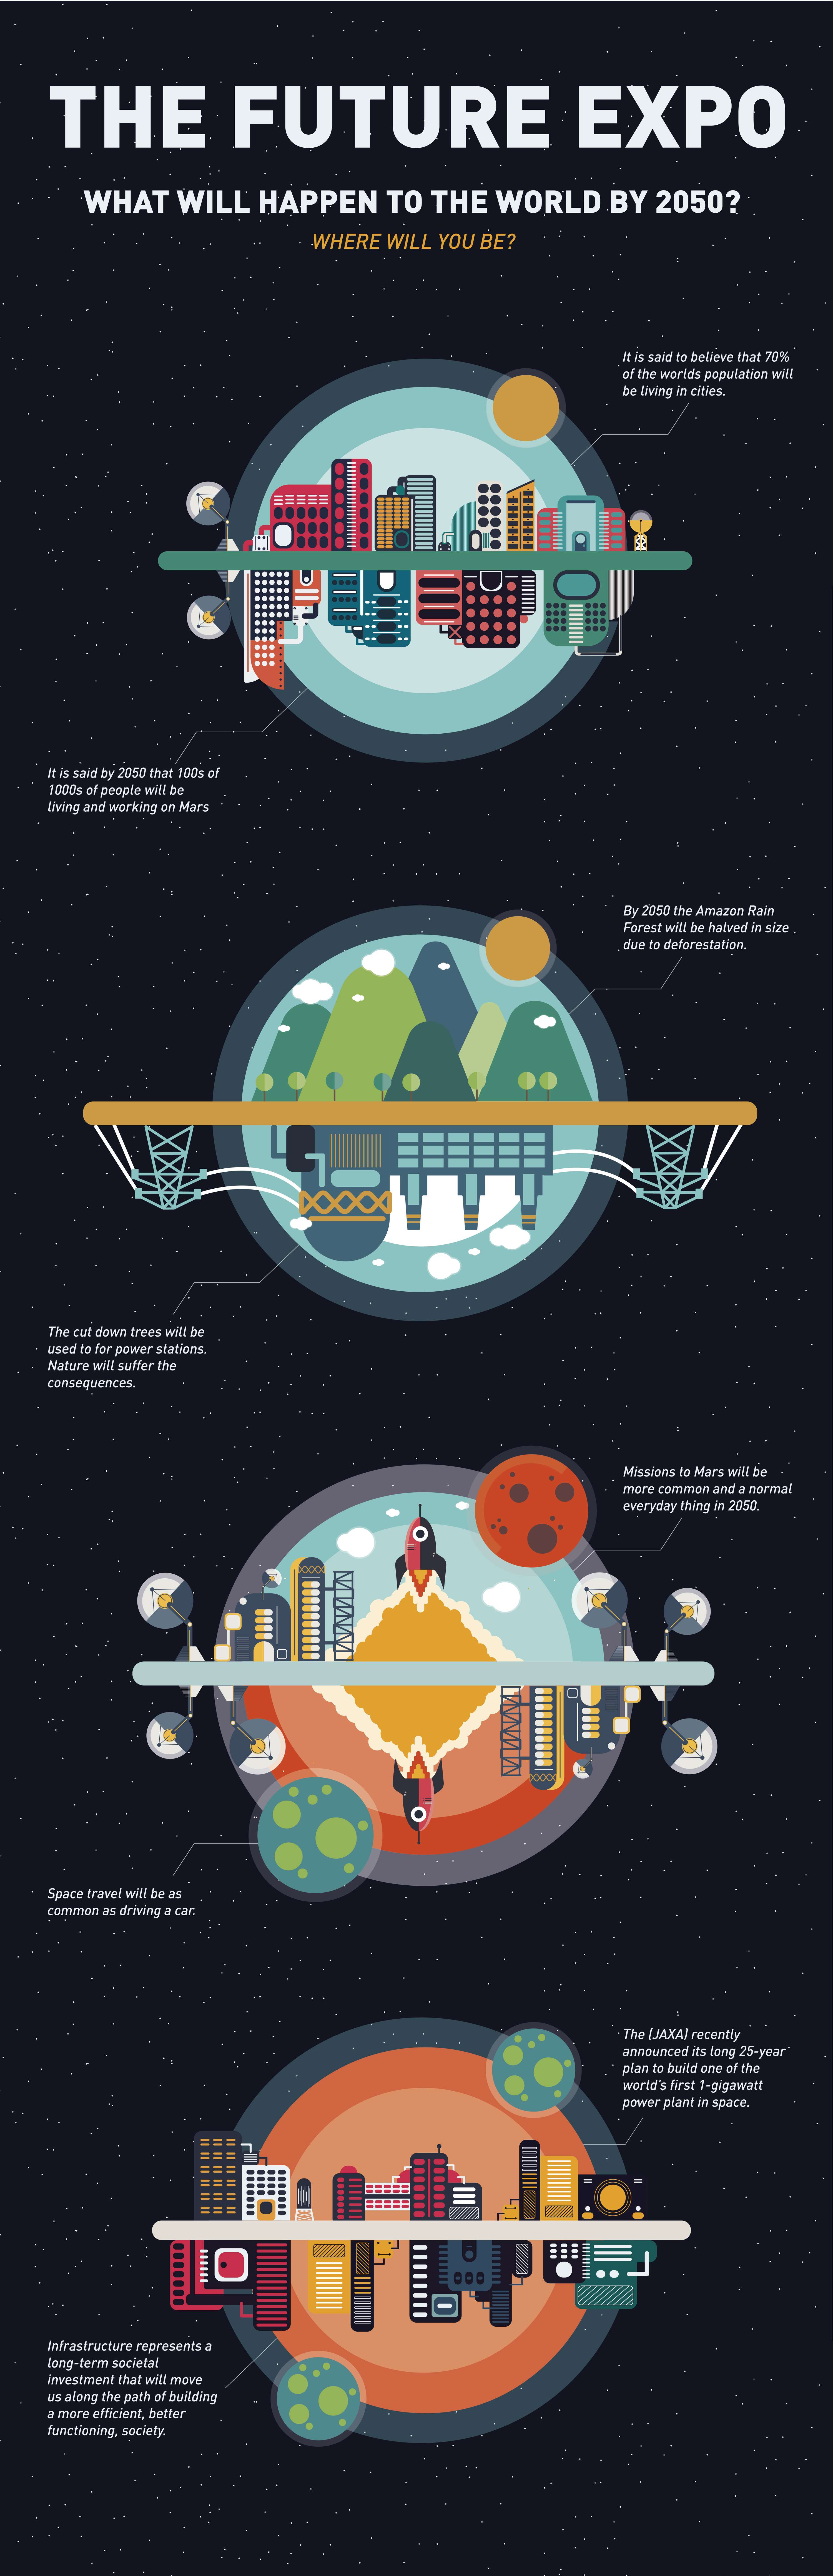 What will happen to the world by 2050? | The Dots